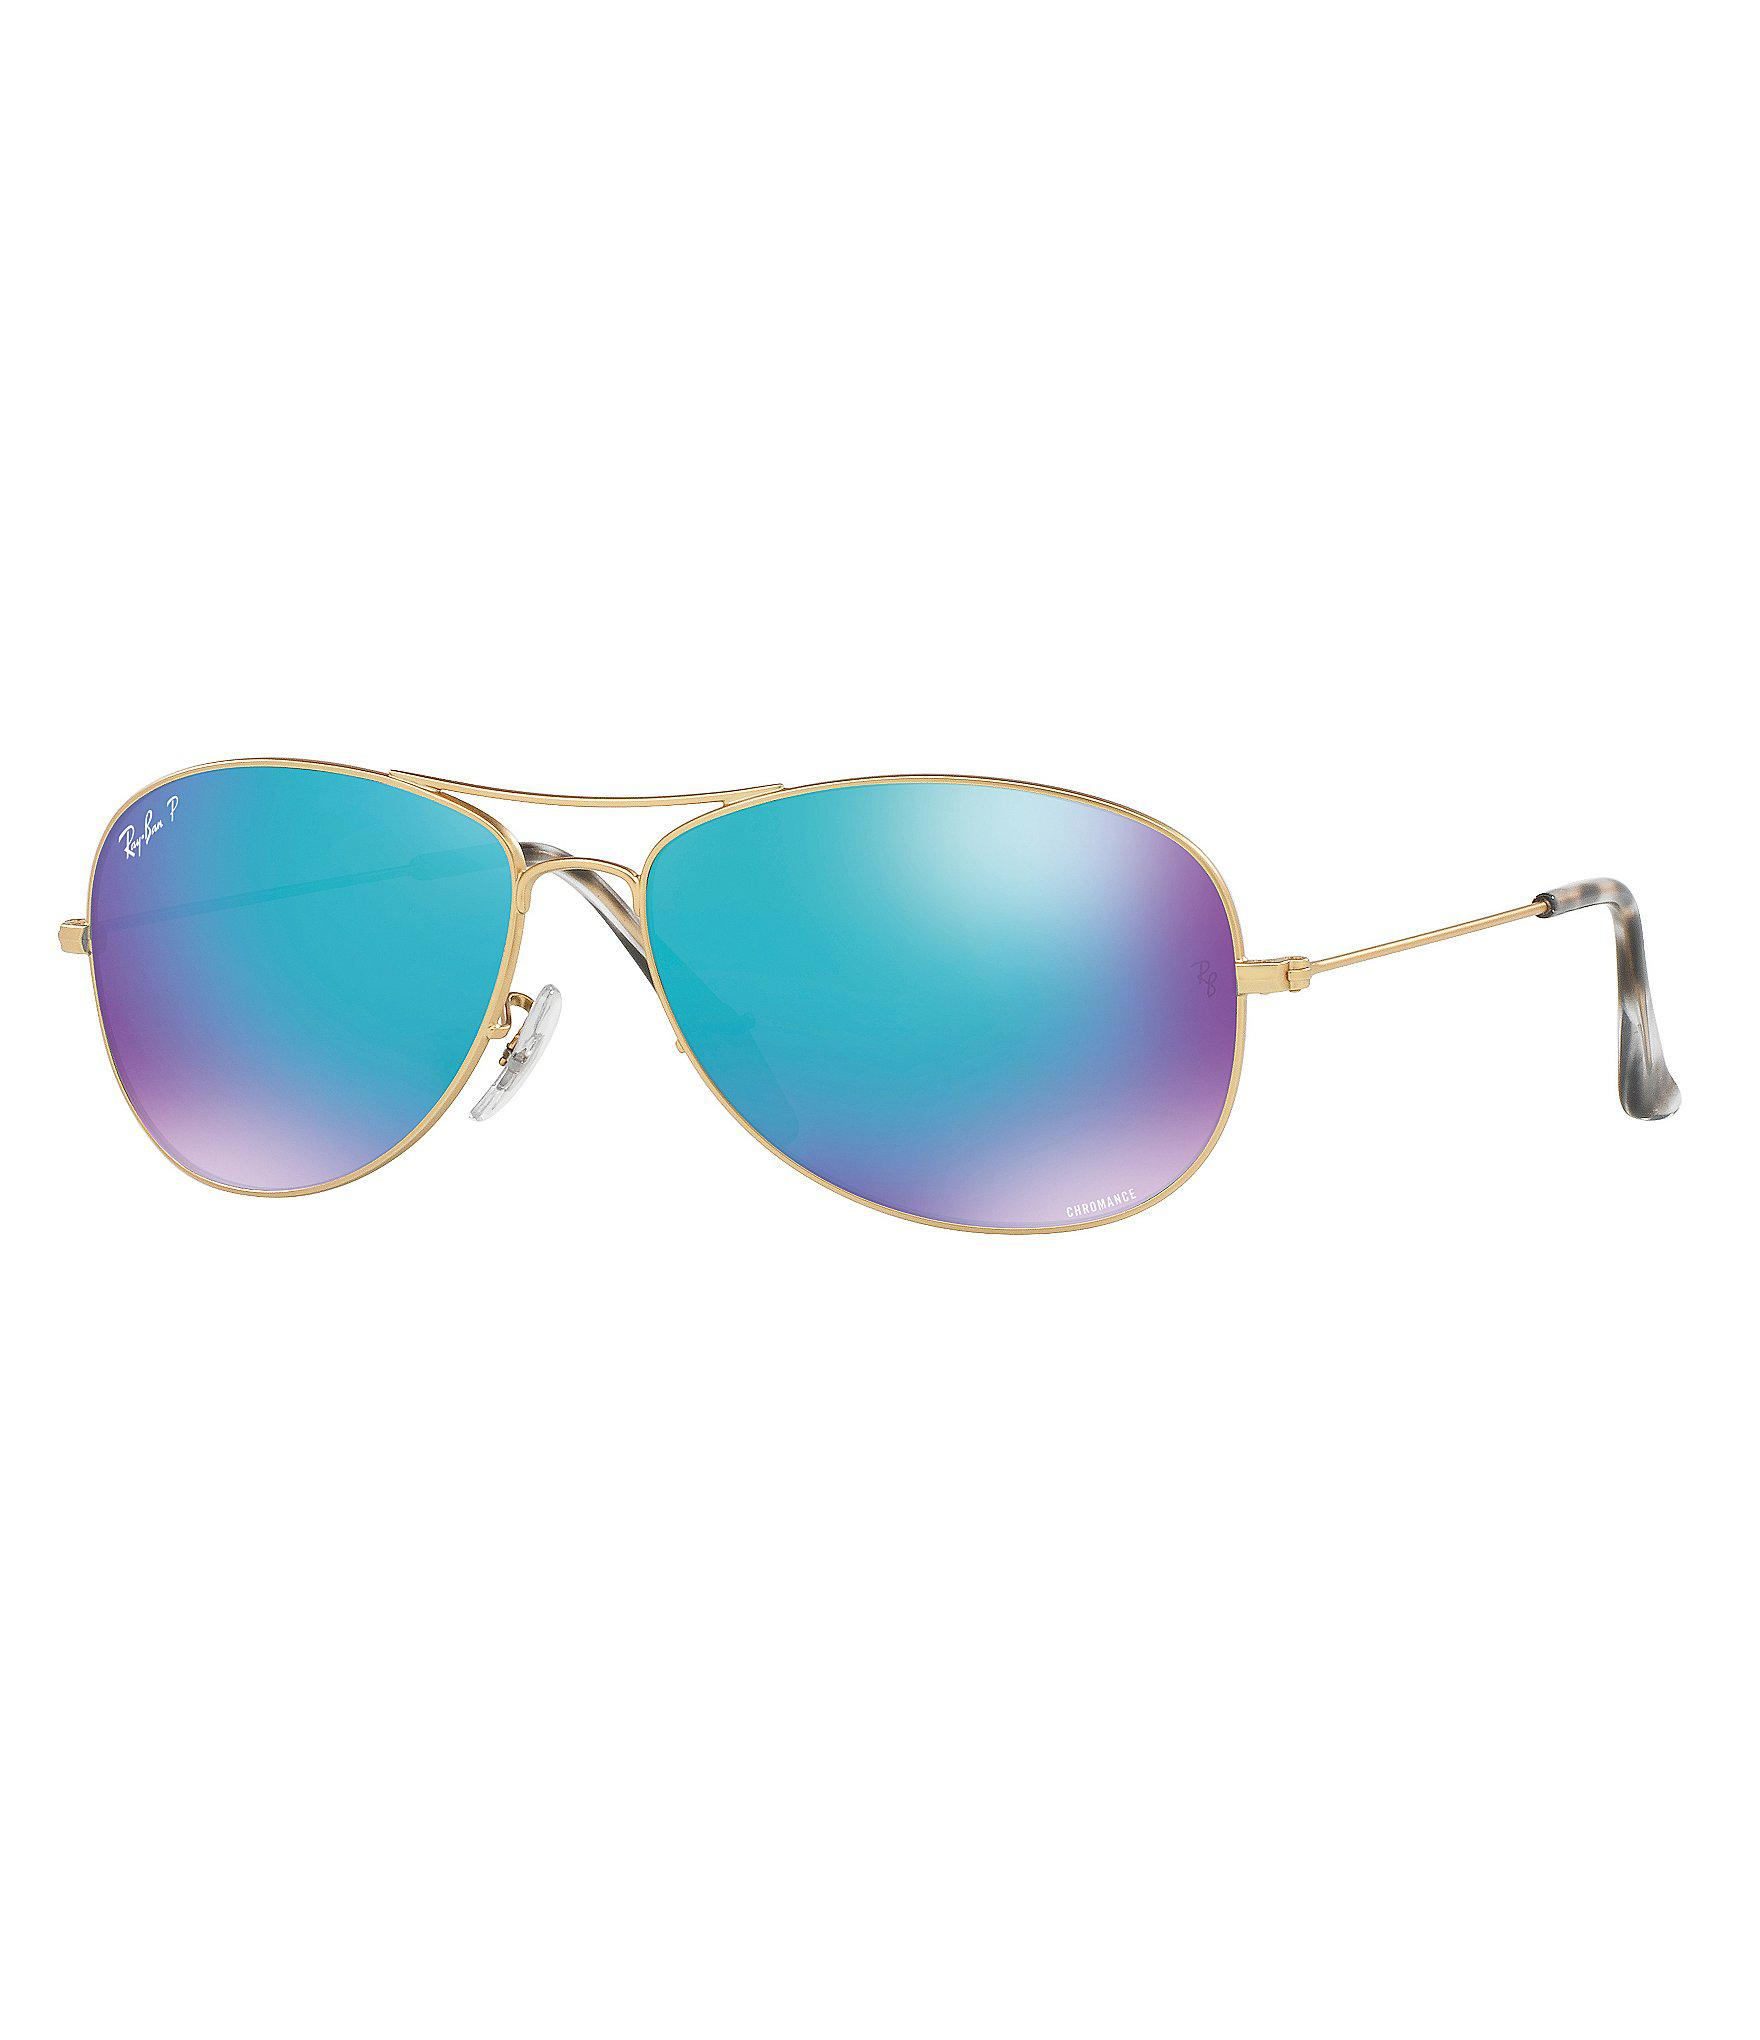 f01790fee9a Lyst - Ray-Ban Chromance Polarized Mirrored Aviator Sunglasses in ...